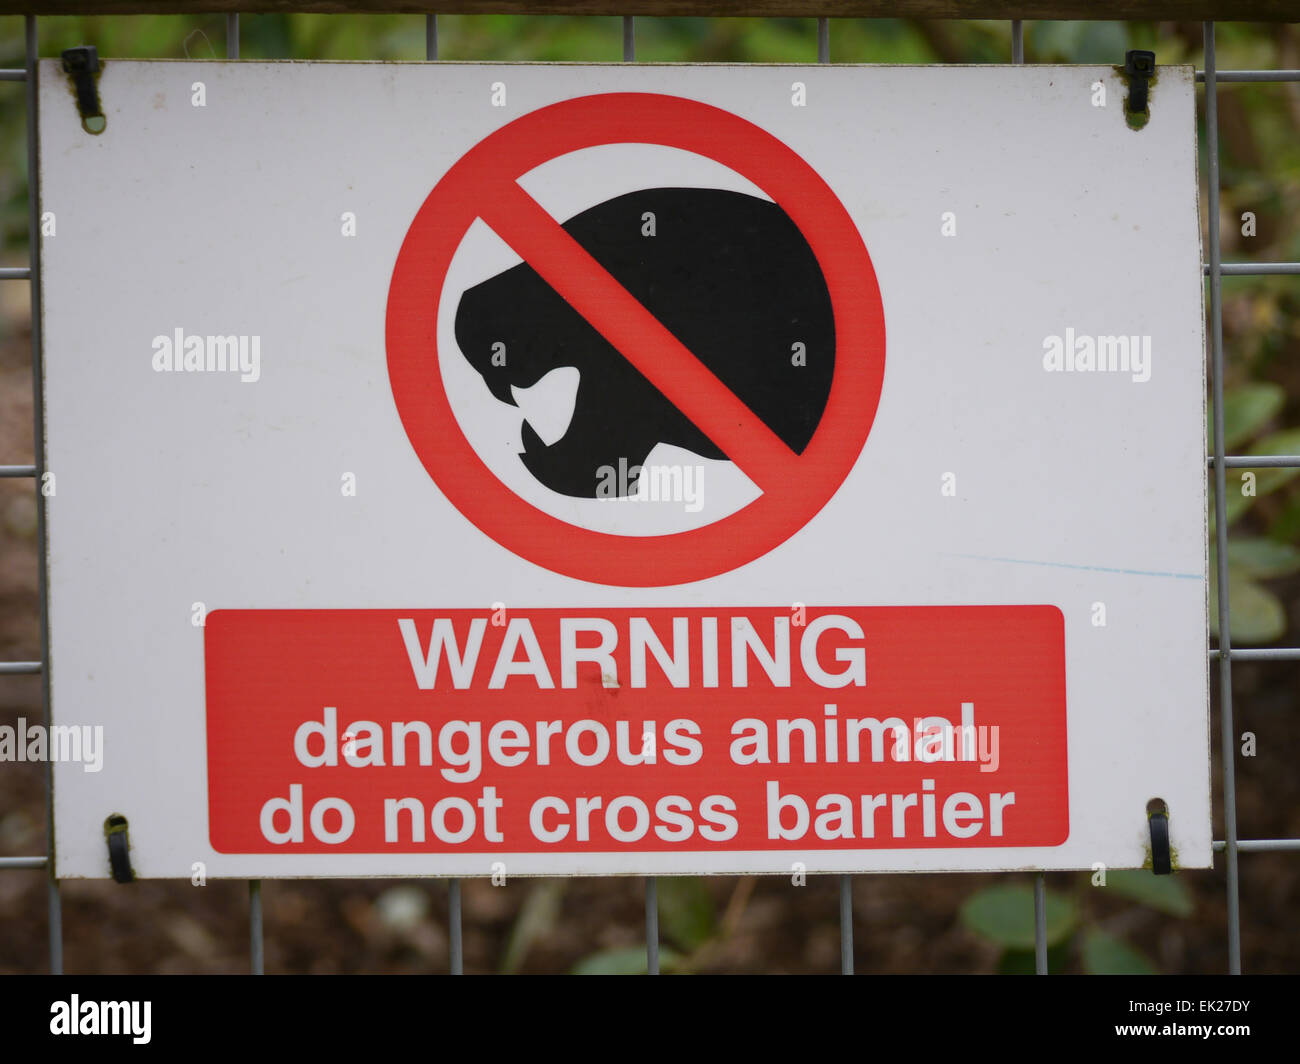 9d8f047b7 A sign at a zoo warning of dangerous animals Stock Photo: 80569719 ...